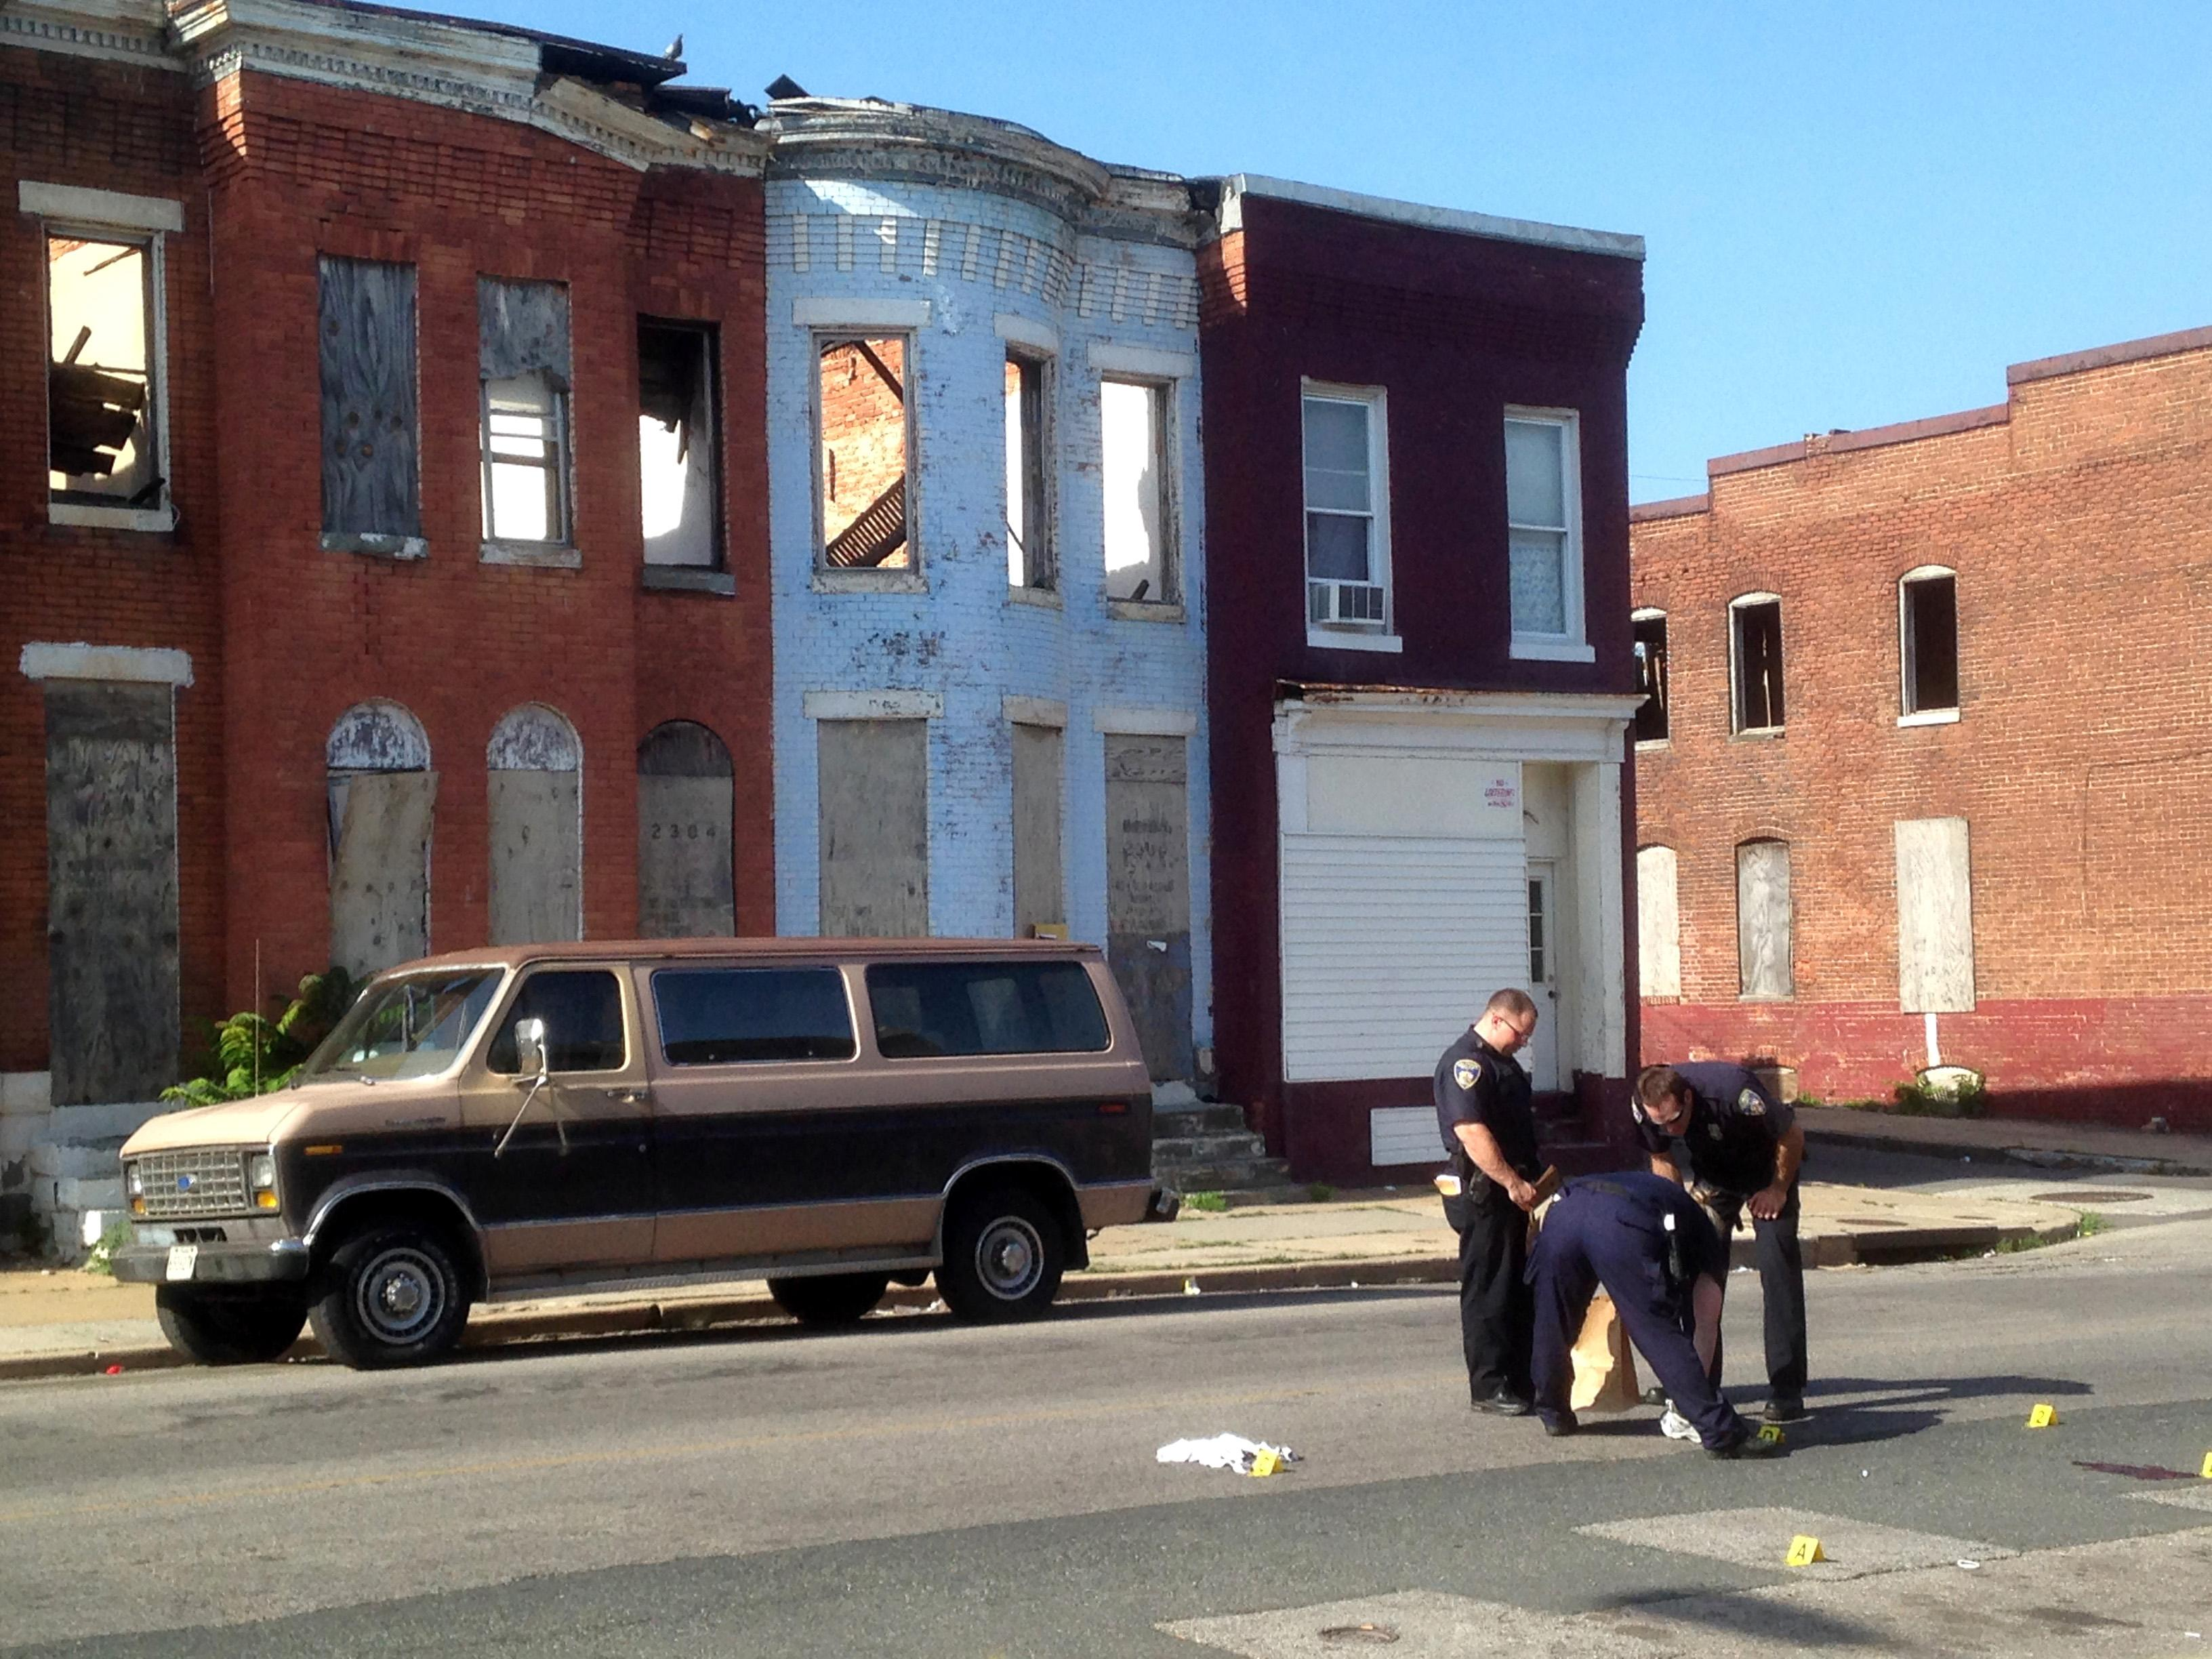 Baltimore residents fearful amid rash of homicides